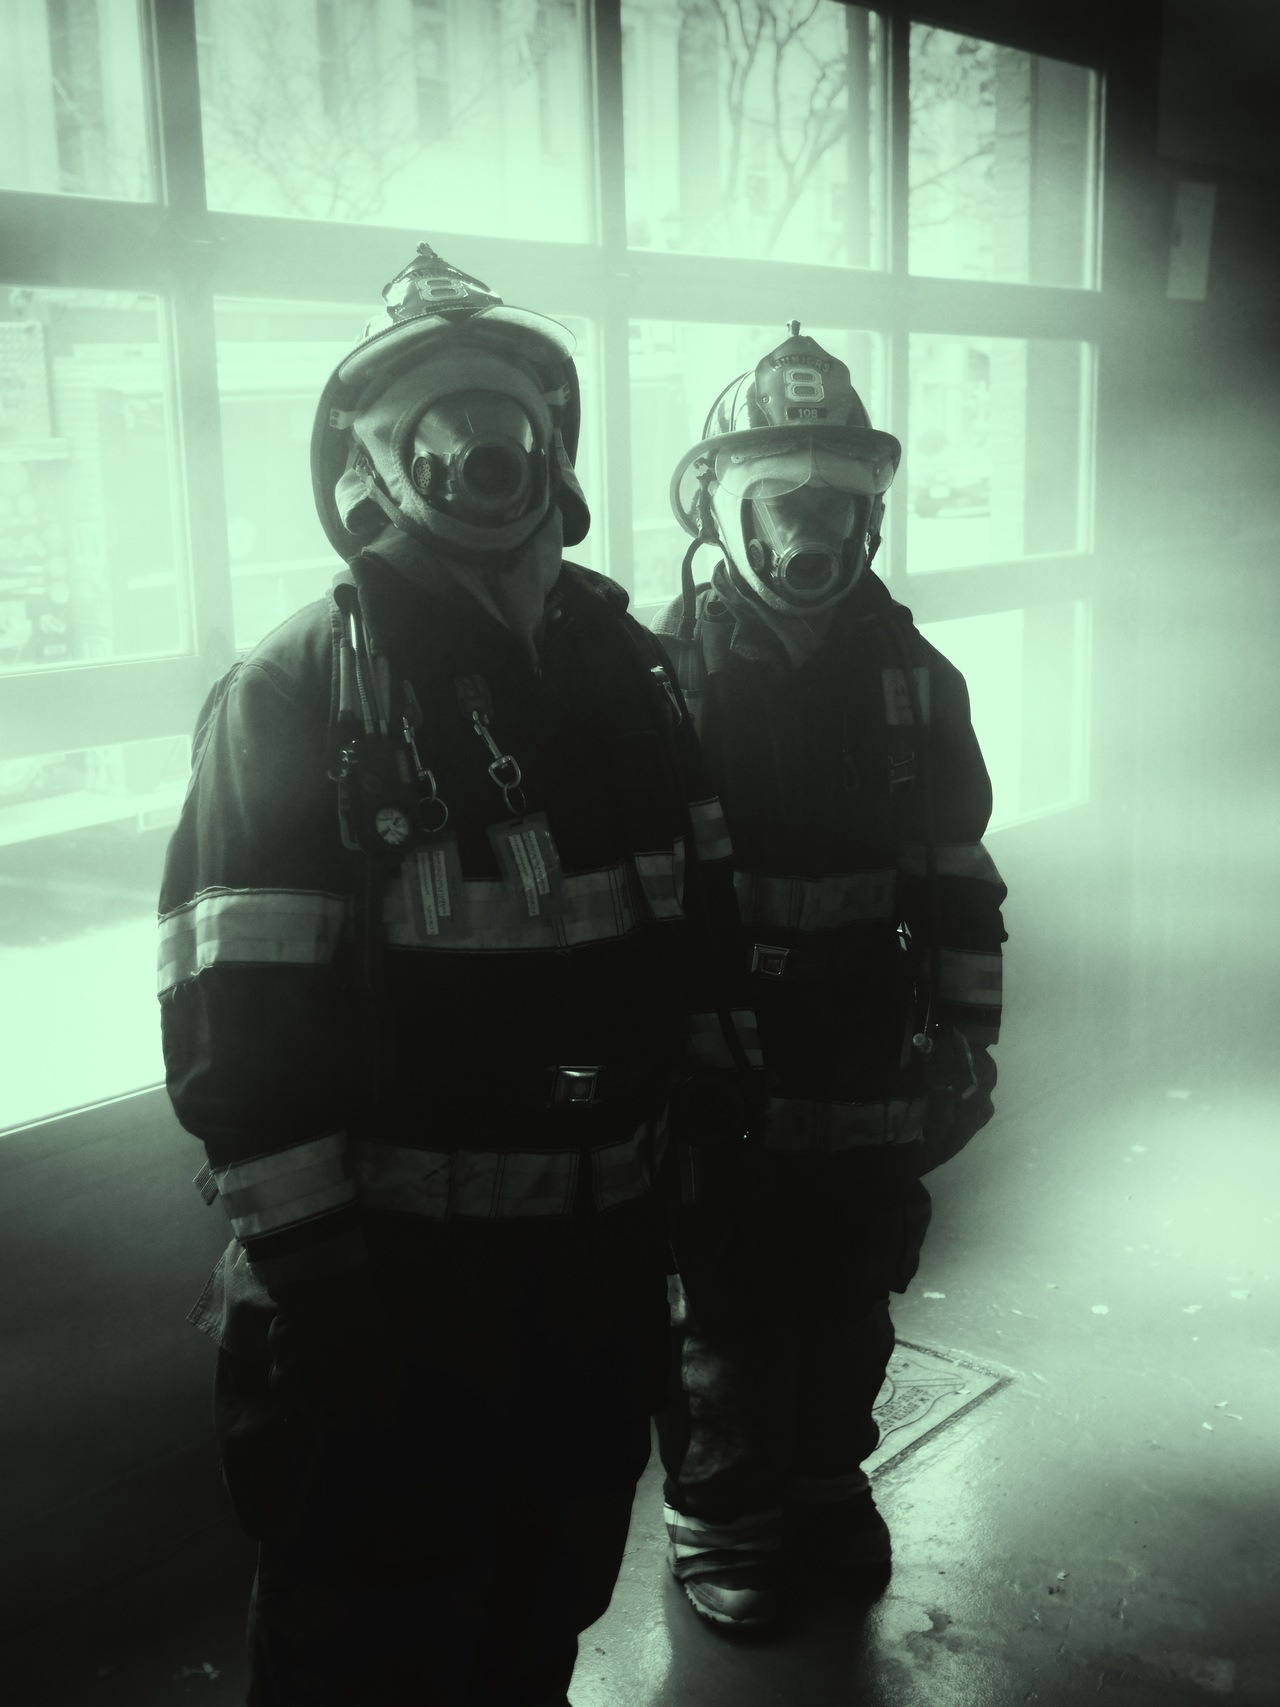 Firefighters : Hudson, New York These are young teenagers helping prepare for Hurricane Sandy. They were training with fog machines inside the station the day before landfall.